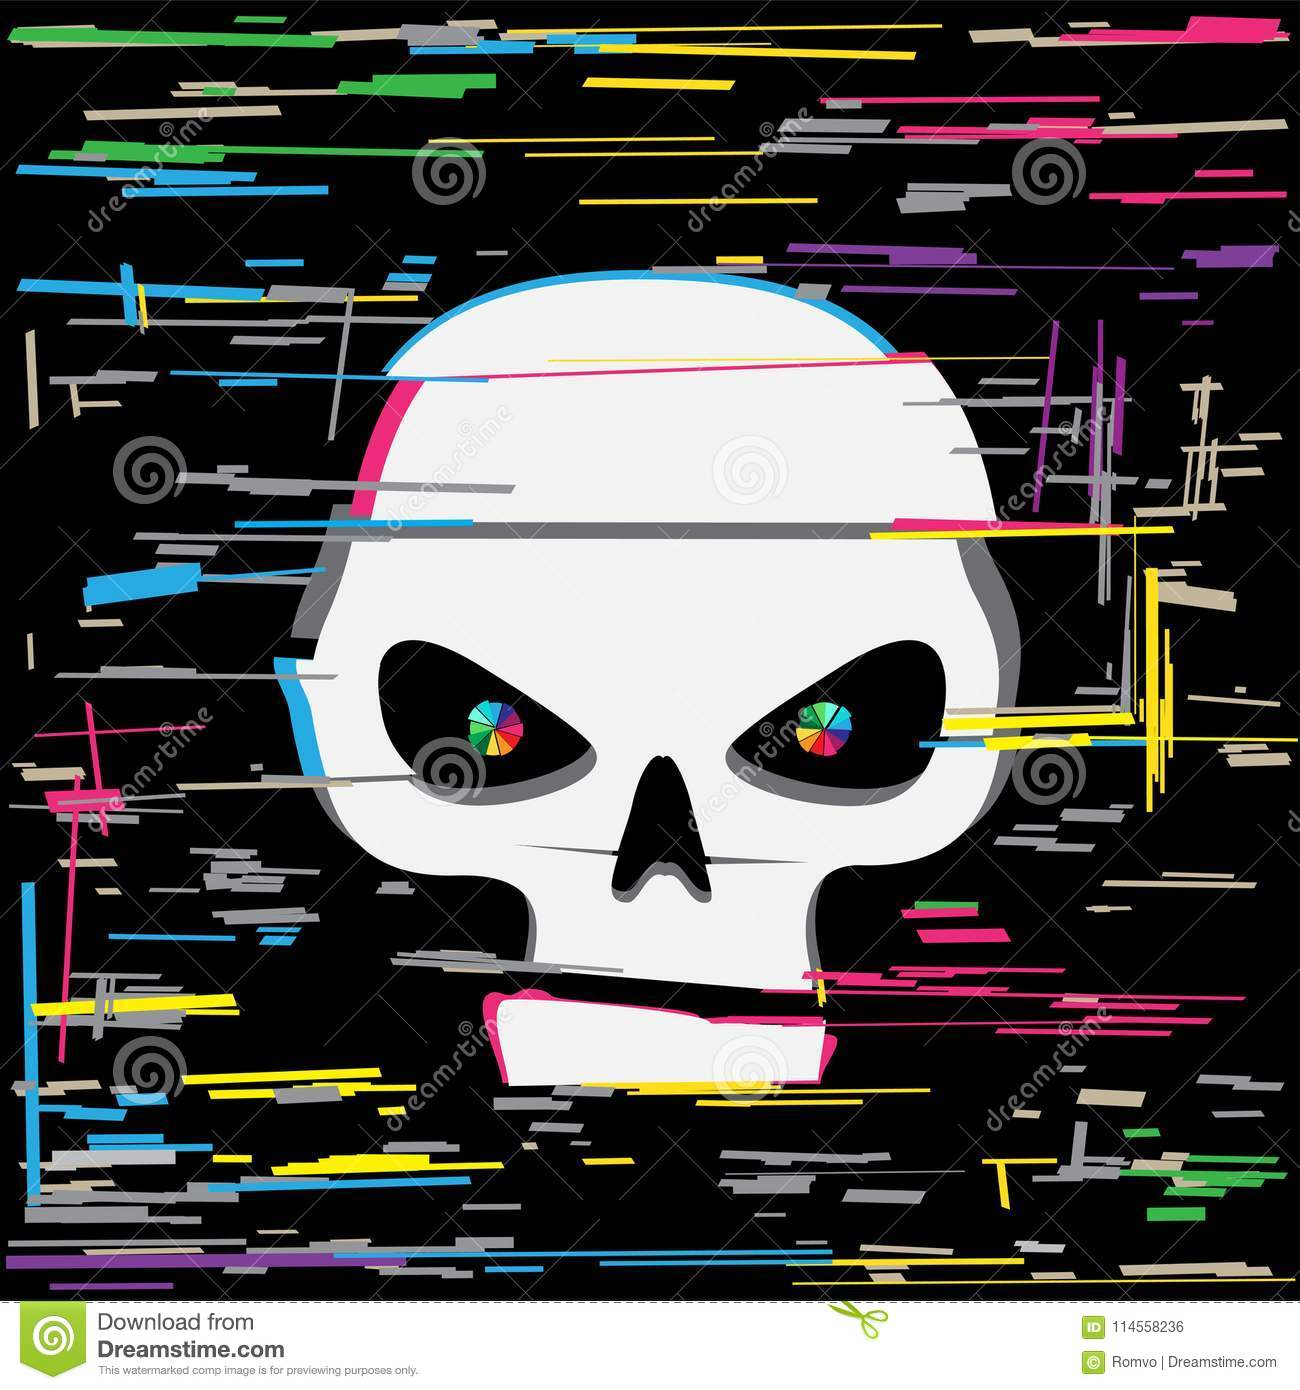 d3d6830555 White glitch hack skull and colors line interference on dark black  background. Computer crime hacker attack illustration. More similar stock  illustrations